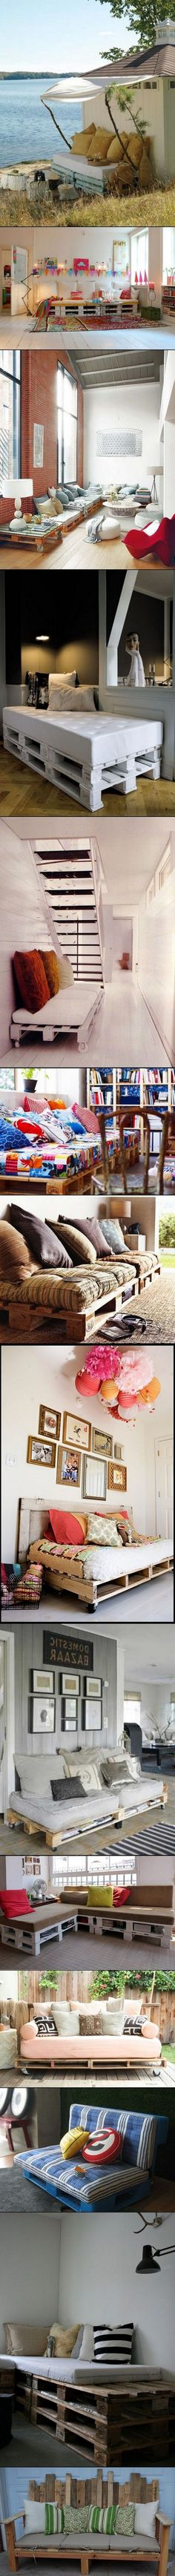 DIY Palette Home Decor - primeira imagem é linda demais. Só fico pensando nestas idéias com paletes - para limpar embaixo deve ser muito chato. Pallet Sofa, Pallet Furniture, Pallet Seating, Pallet Benches, Pallet Tables, Outdoor Furniture, Decor Crafts, Diy Home Decor, Diy Crafts